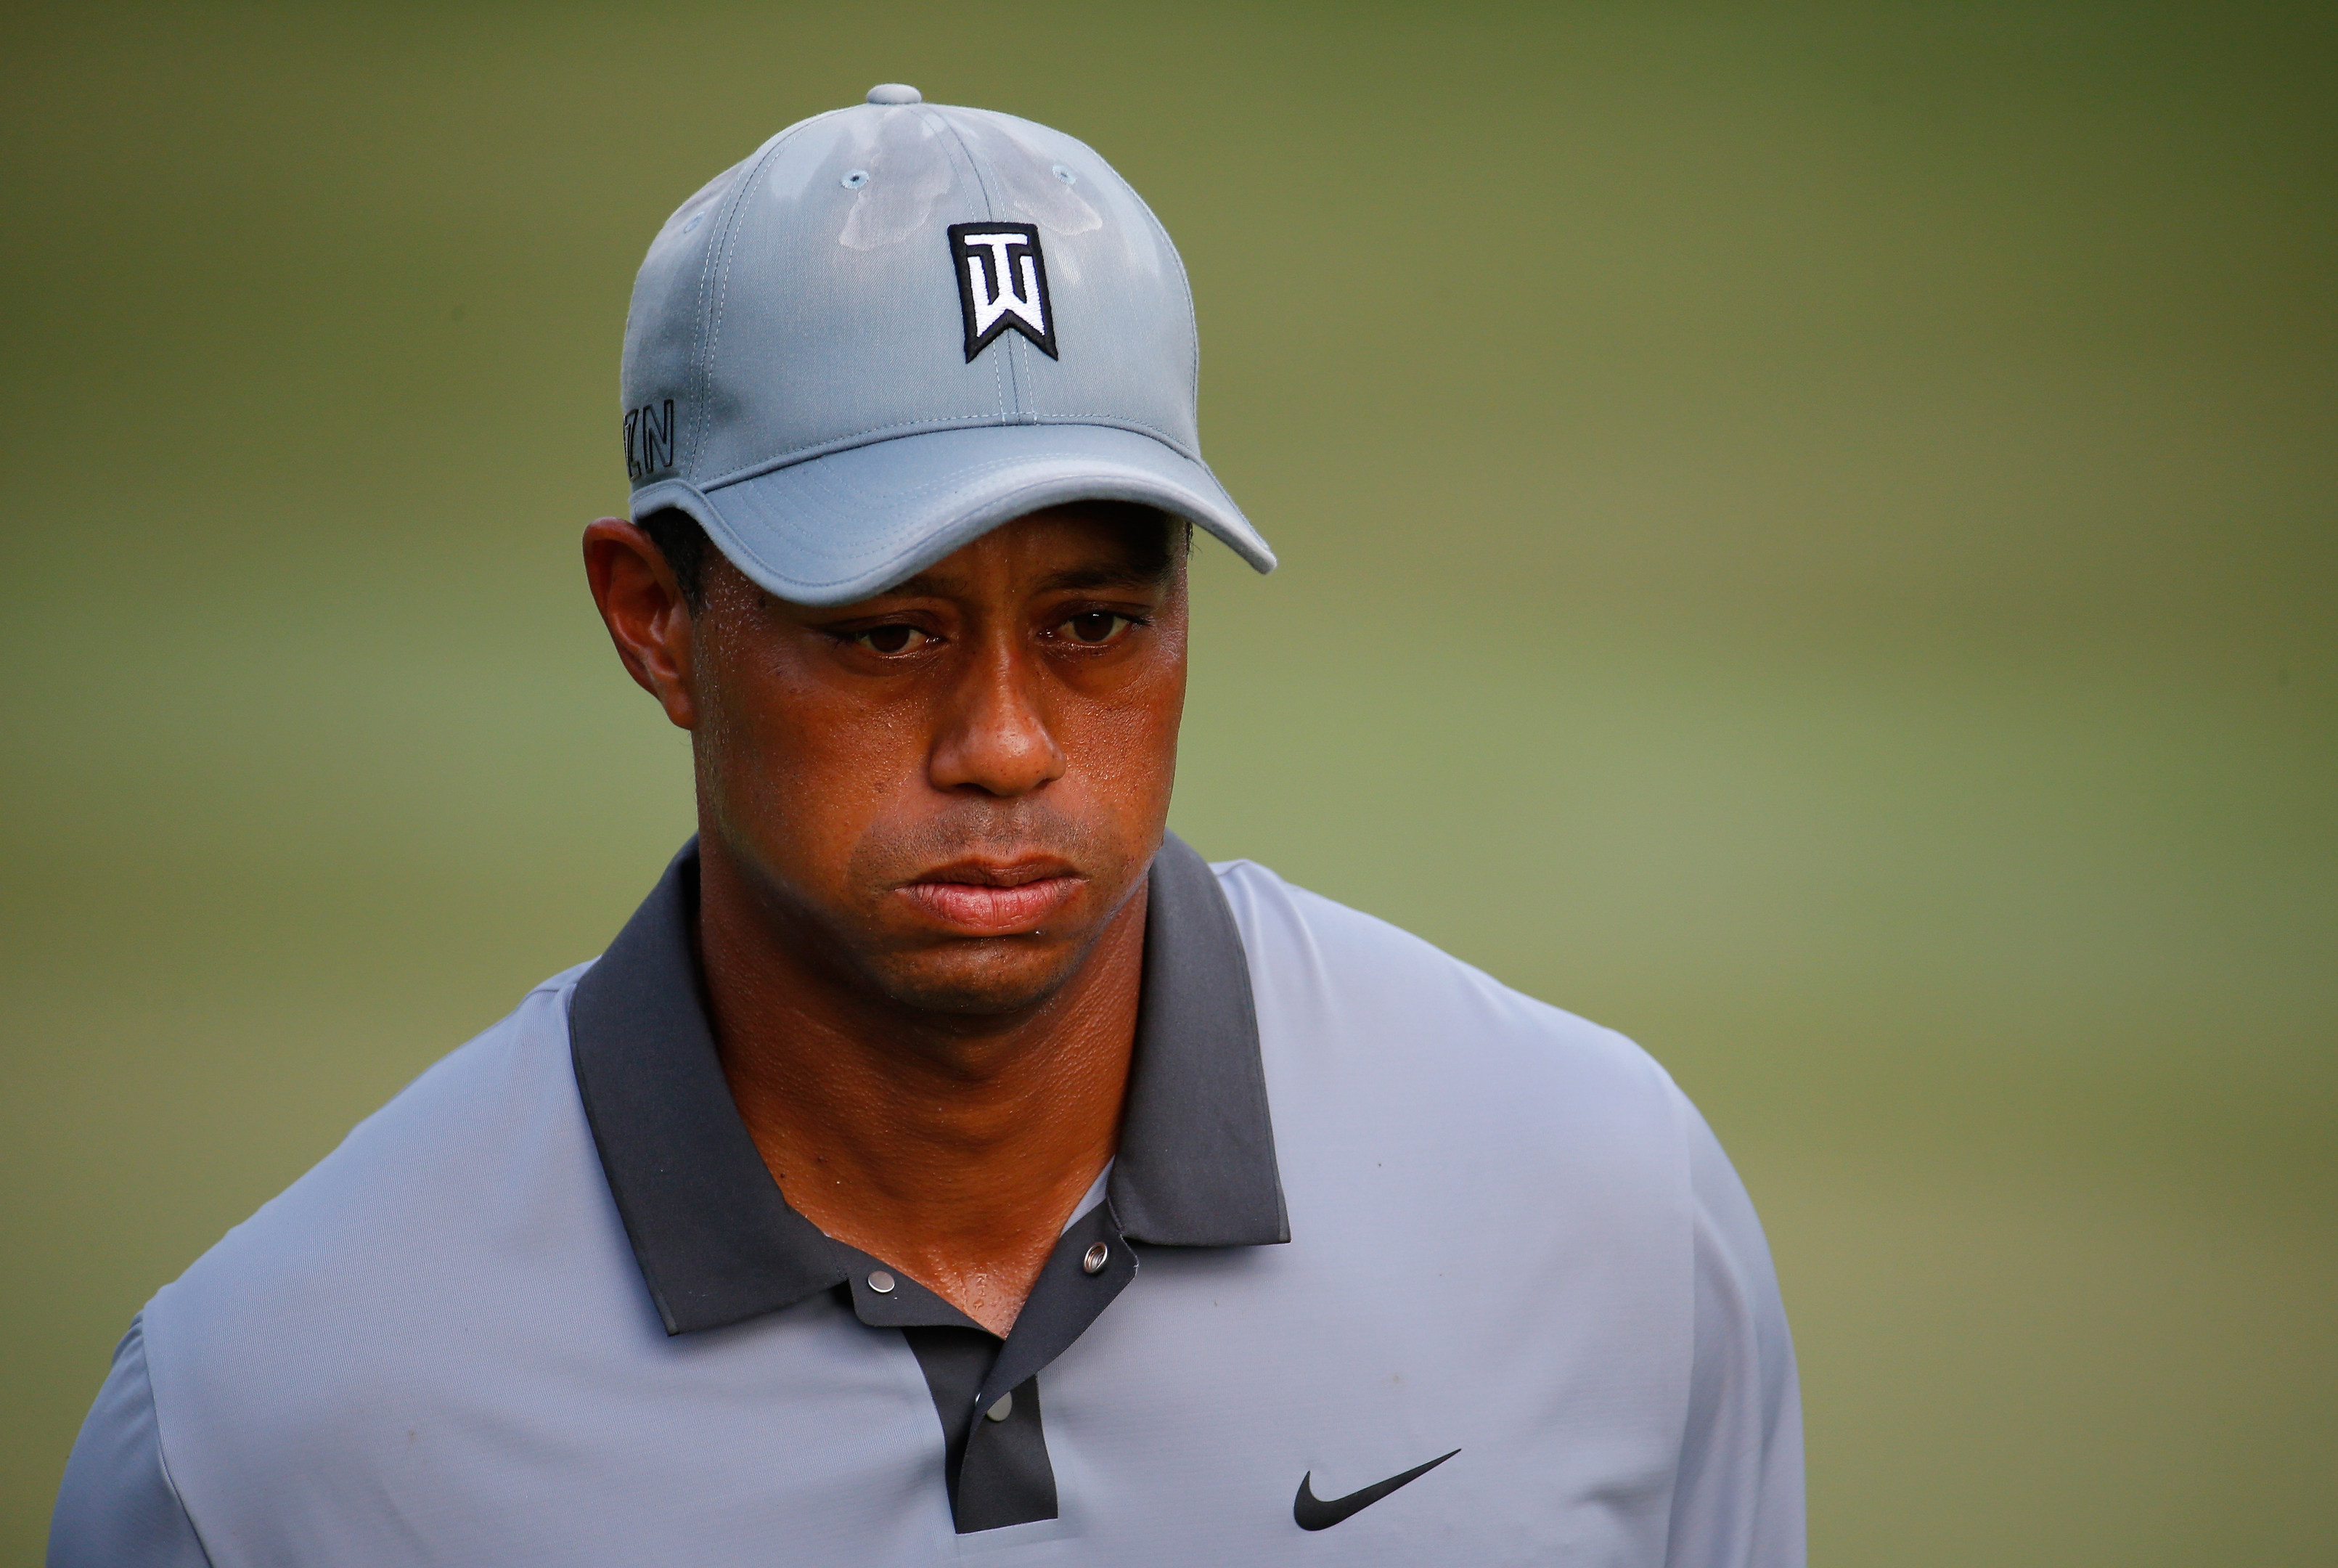 Tiger Woods may have played his last competition.